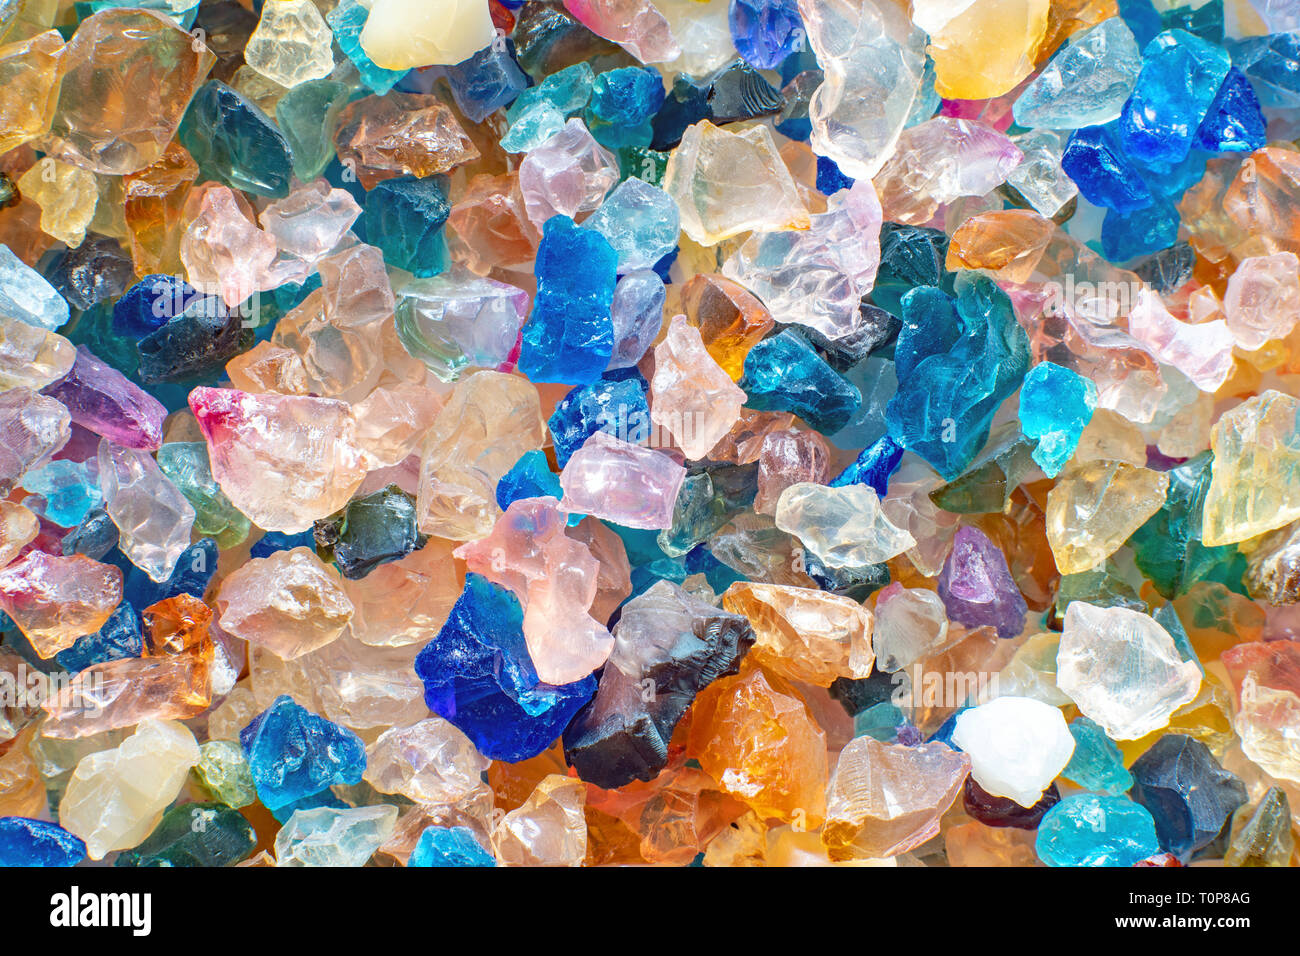 Small shiny colorful stones as a background pattern Stock Photo